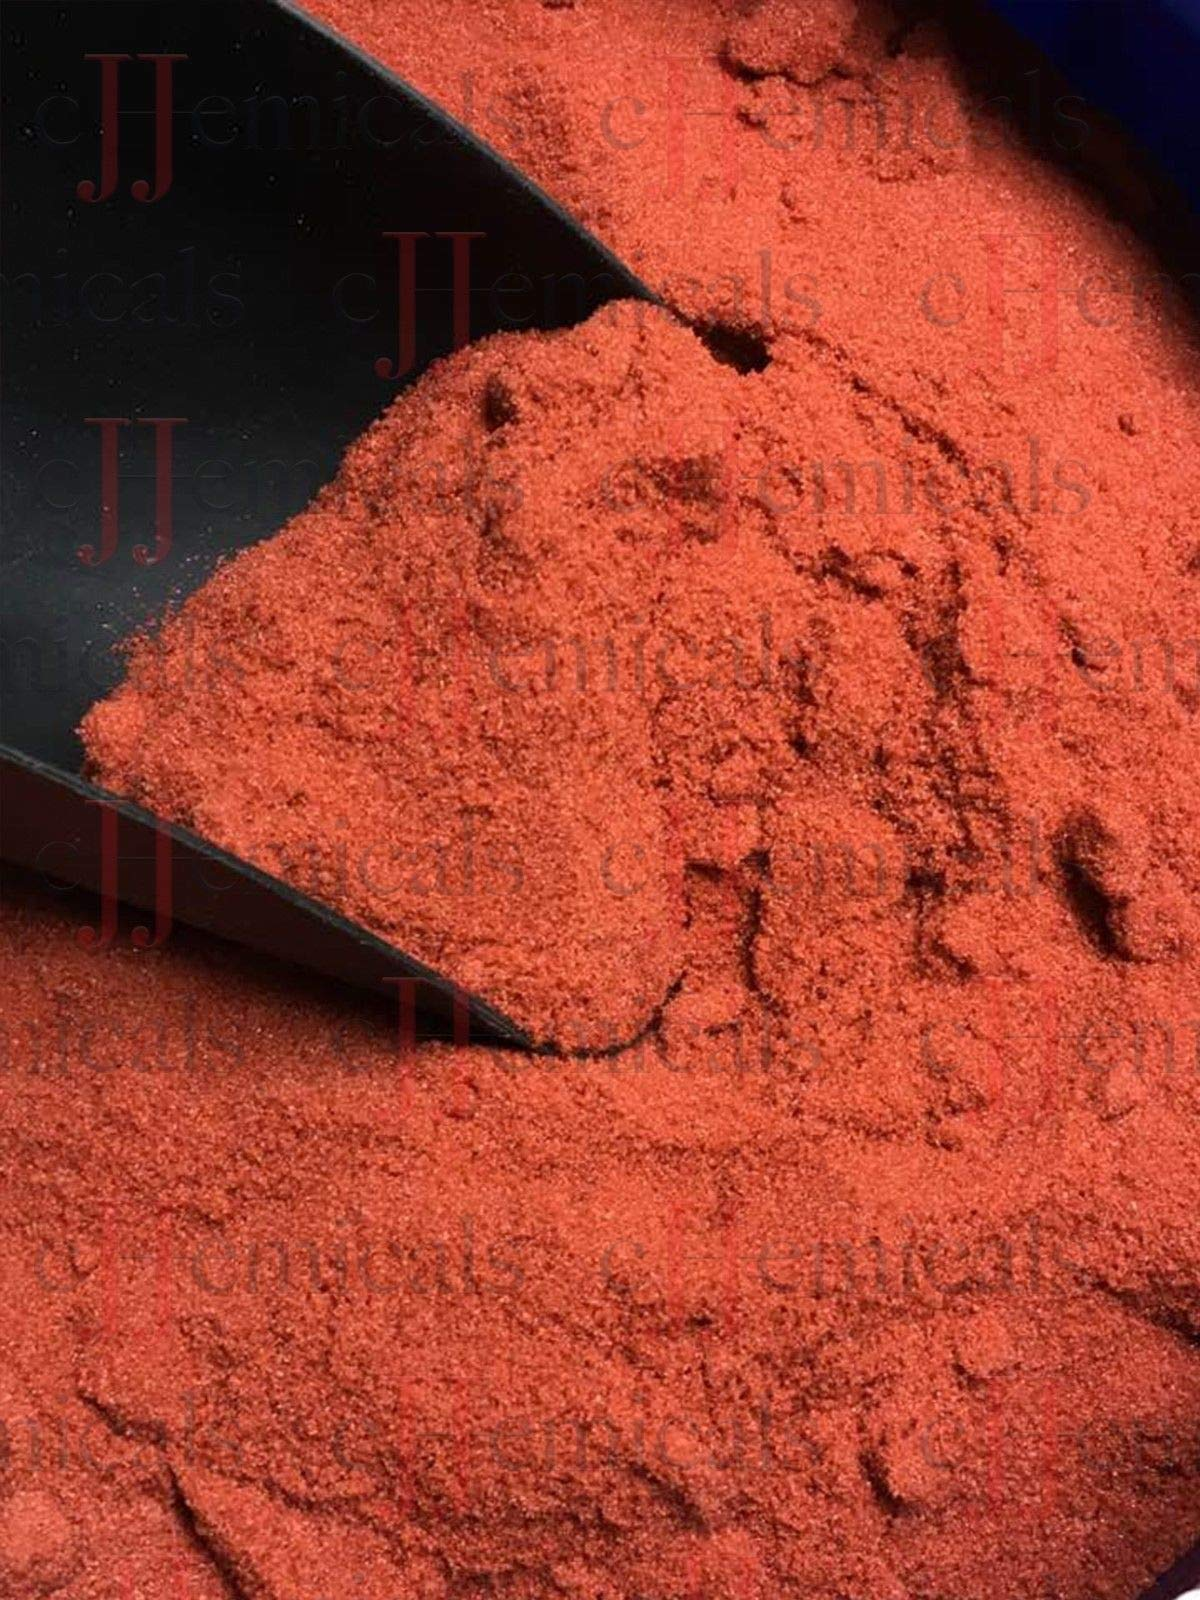 Cobalt Sulfate Heptahydrate Minimum 99% Purity! 20 pounds by JJChemicals (Image #3)